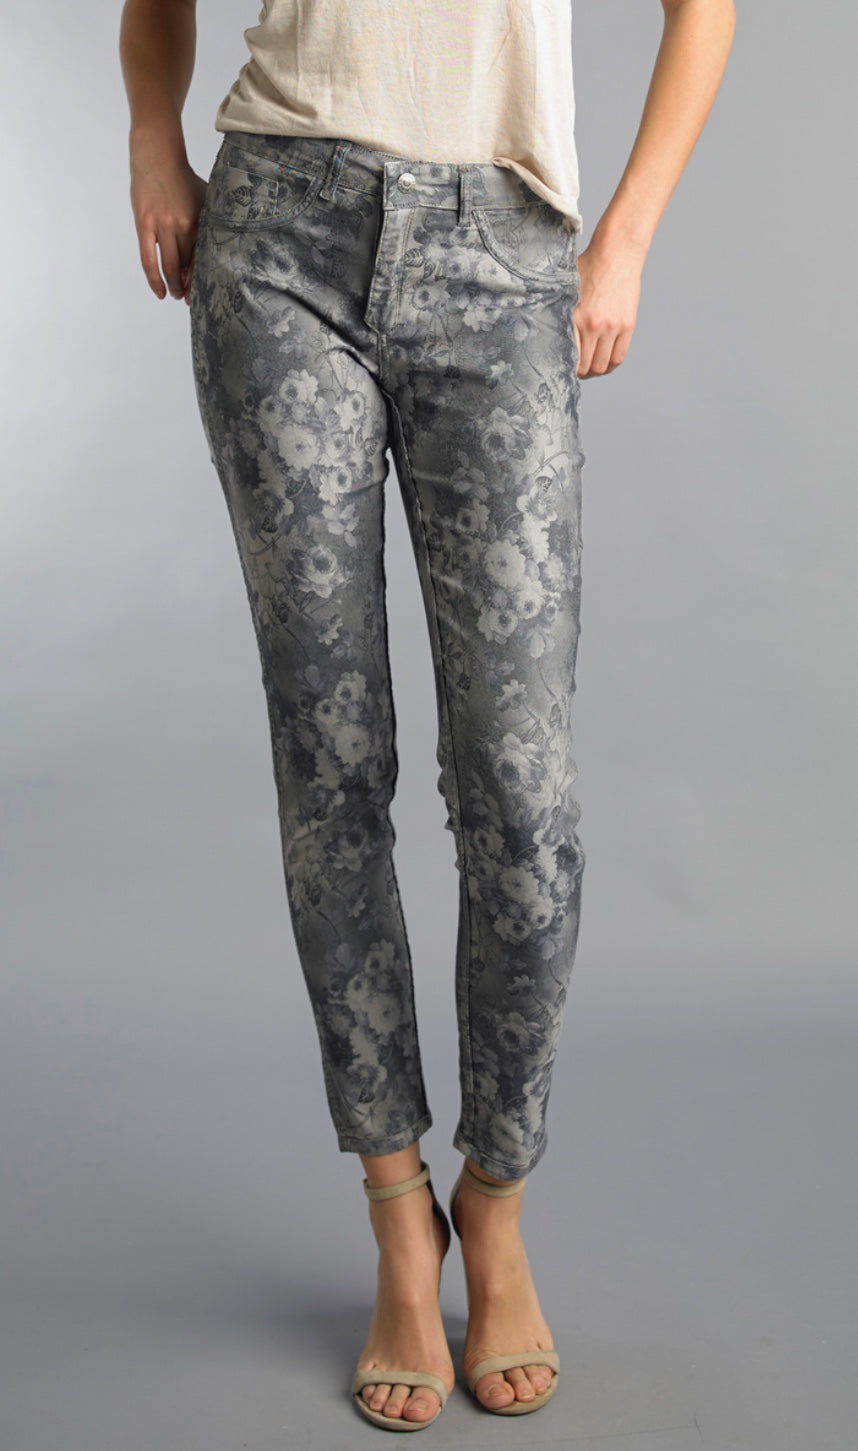 Tempo Paris Gray Floral Reversible Jeans